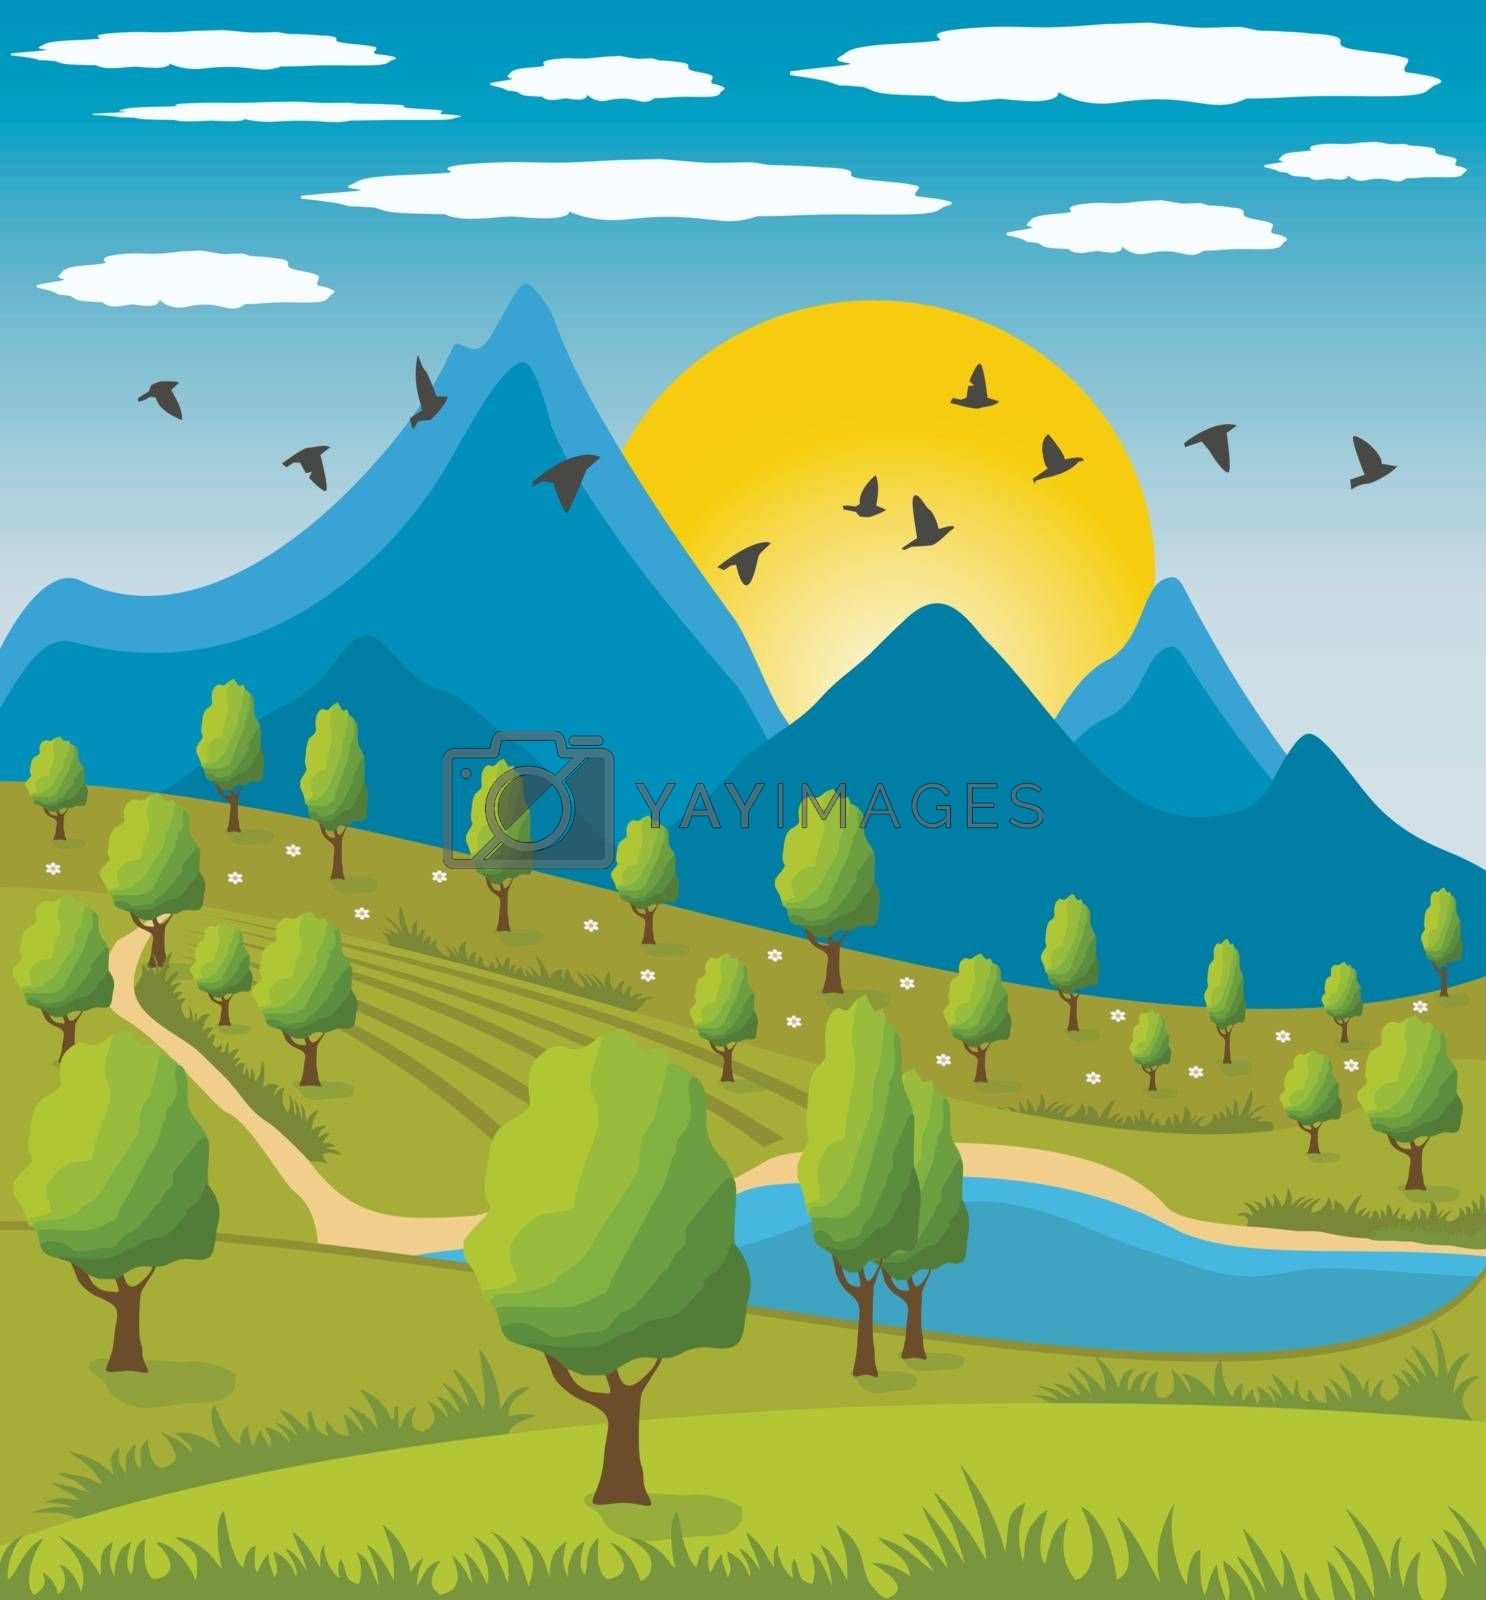 Illustration of beauty landscape with tree and mountain background